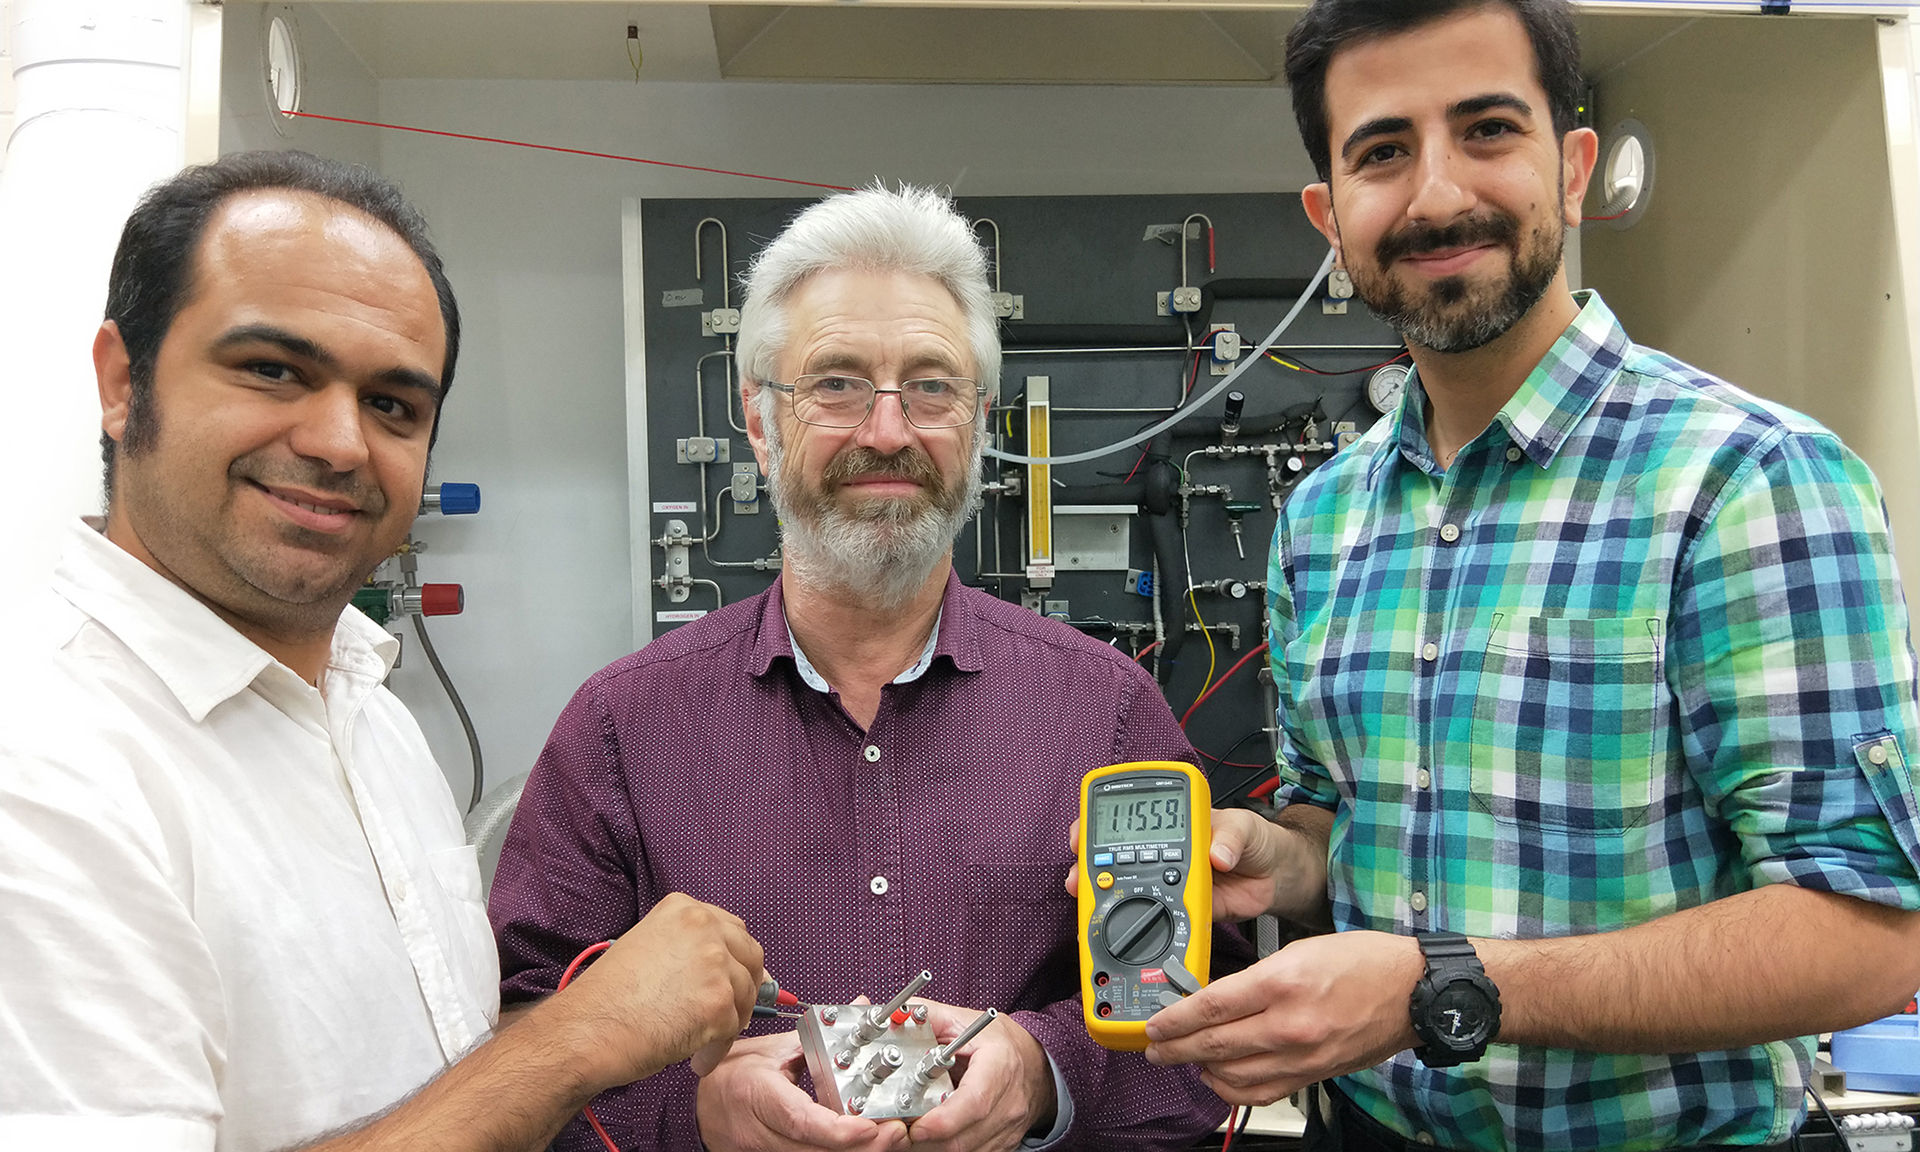 Professor John Andrews (centre) with the RMIT team that conducted the latest proton battery experiments: Dr Shahin Heidari (left) and Saeed Seif Mohammadi (PhD researcher, right). Not pictured: Dr Amandeep Singh Oberoi (now at Thapar University Patiala, India).